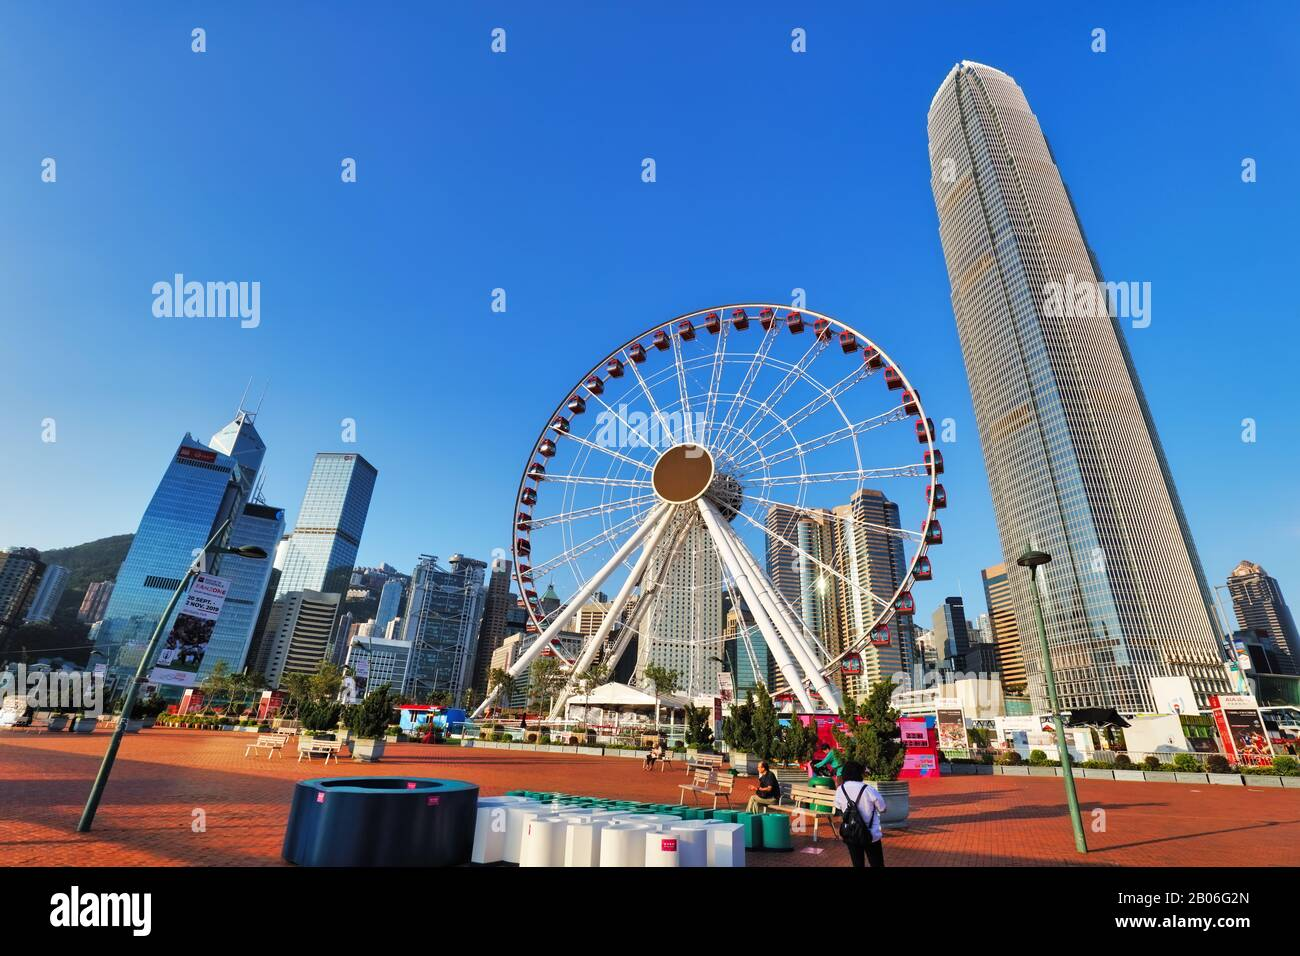 Hong Kong, China- October 16, 2019: skyline with International Finance Centre and Observation Wheel in the financial district of Hong Kong on a sunny Stock Photo